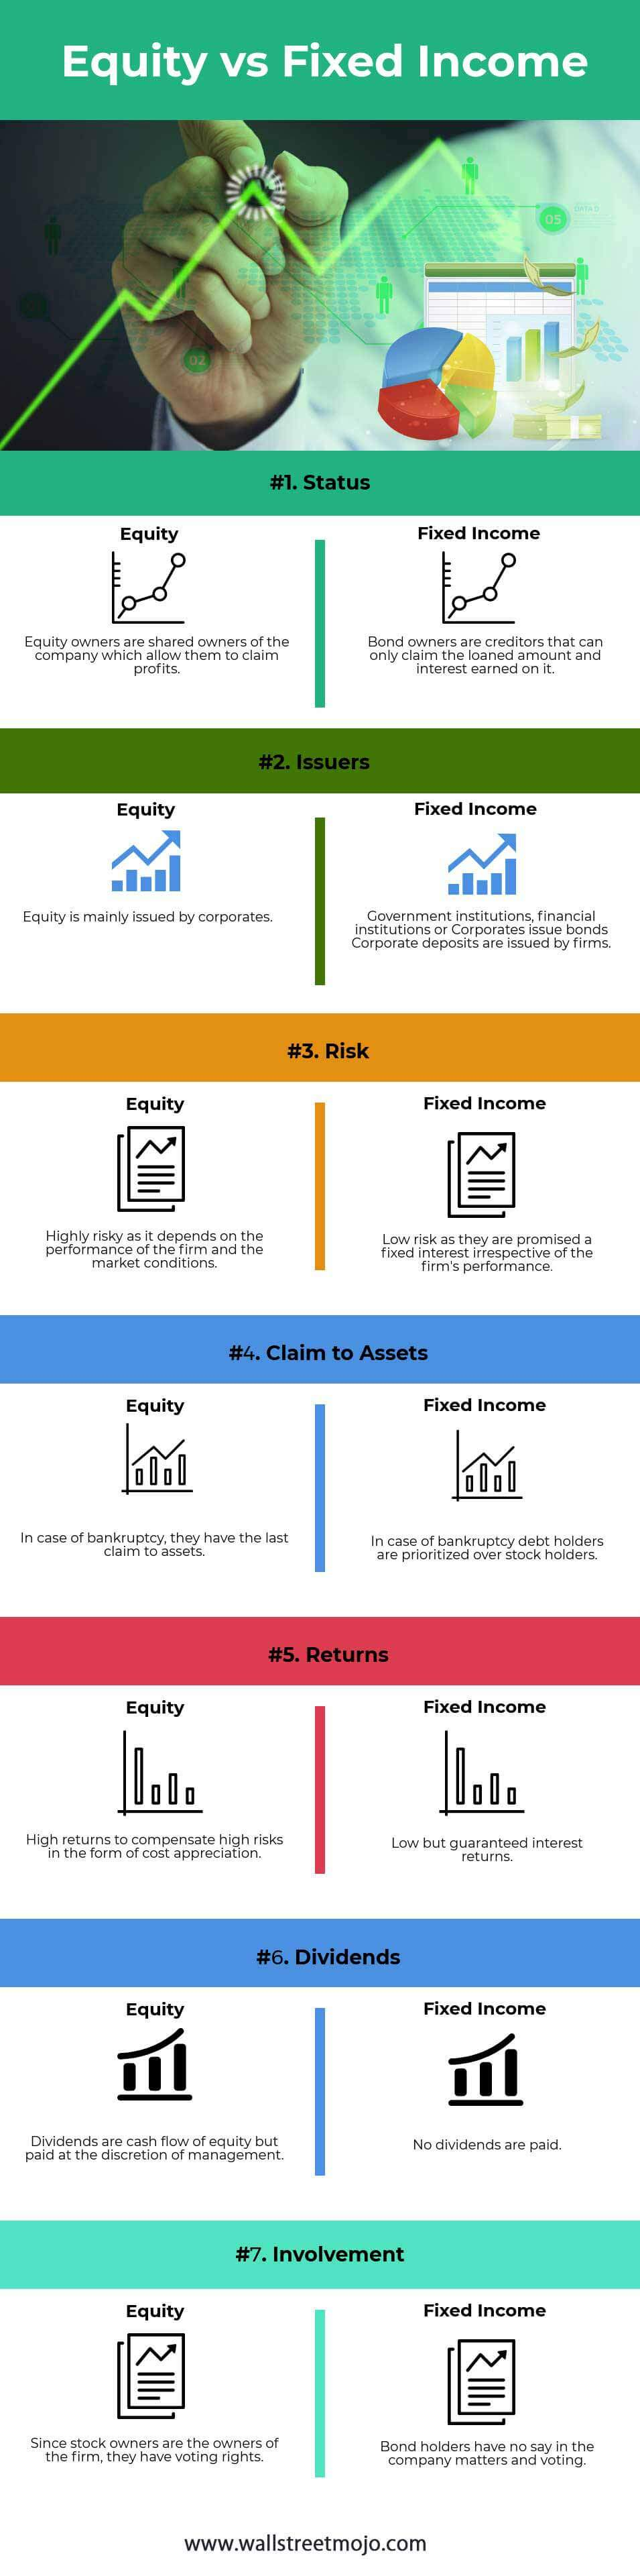 Equity-vs-Fixed-Income